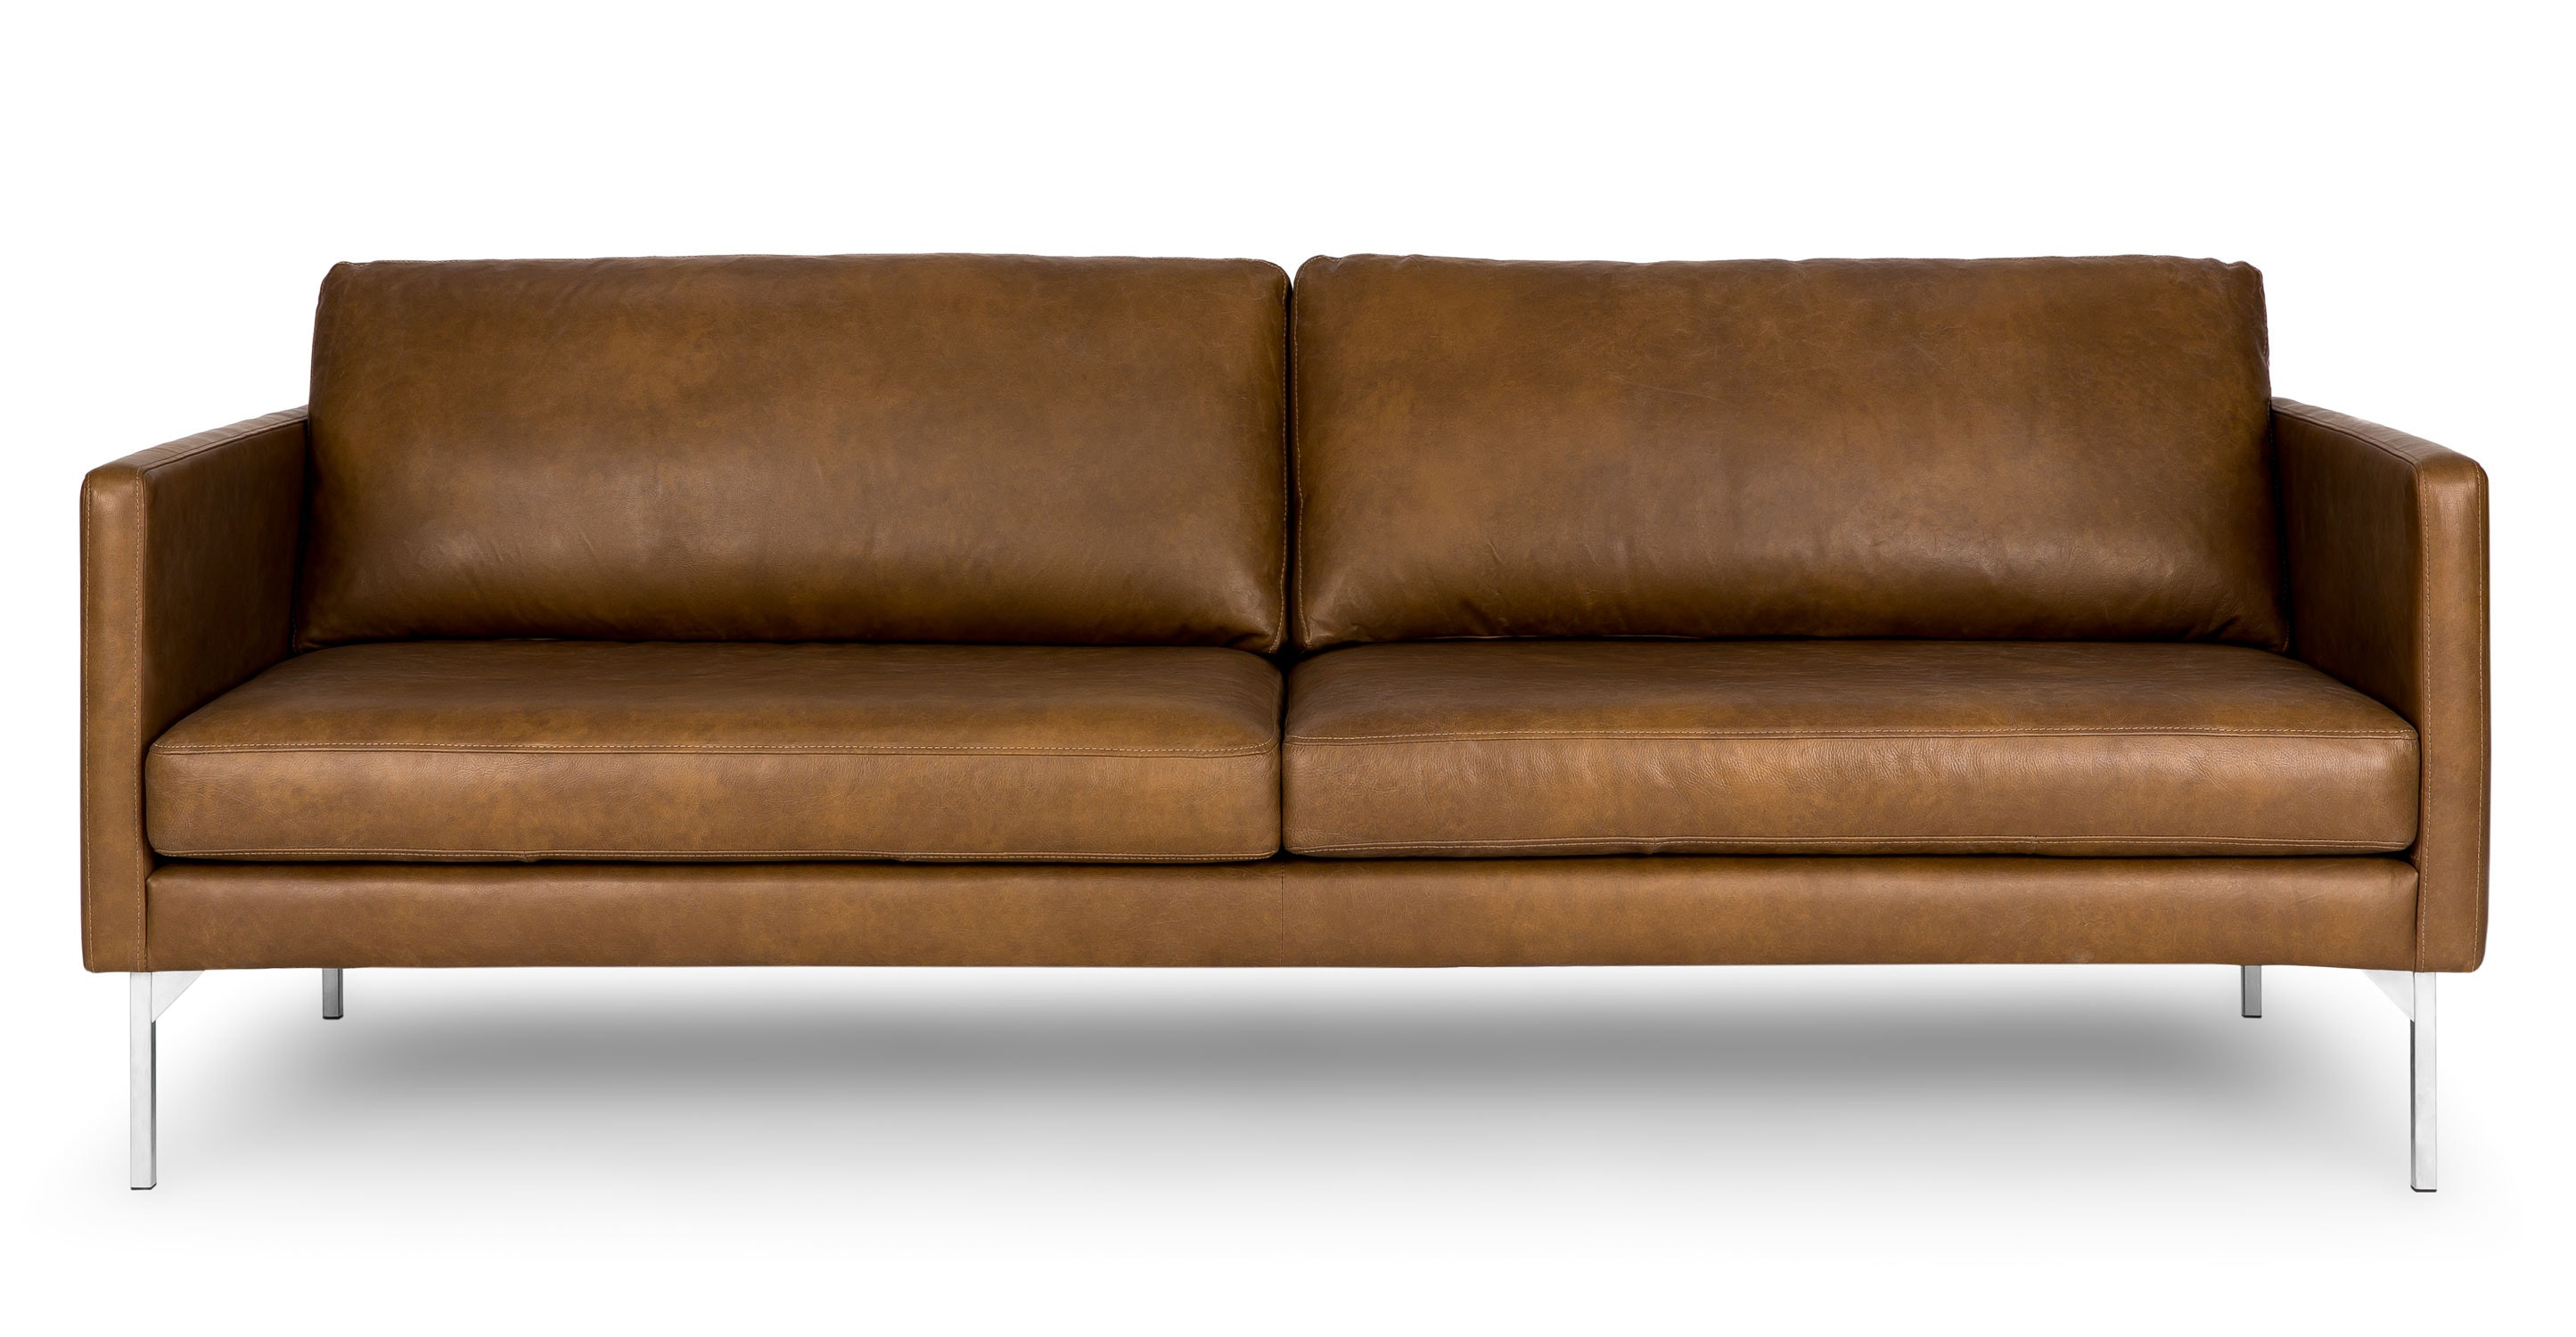 Article Echo Oxford Tan Sofa